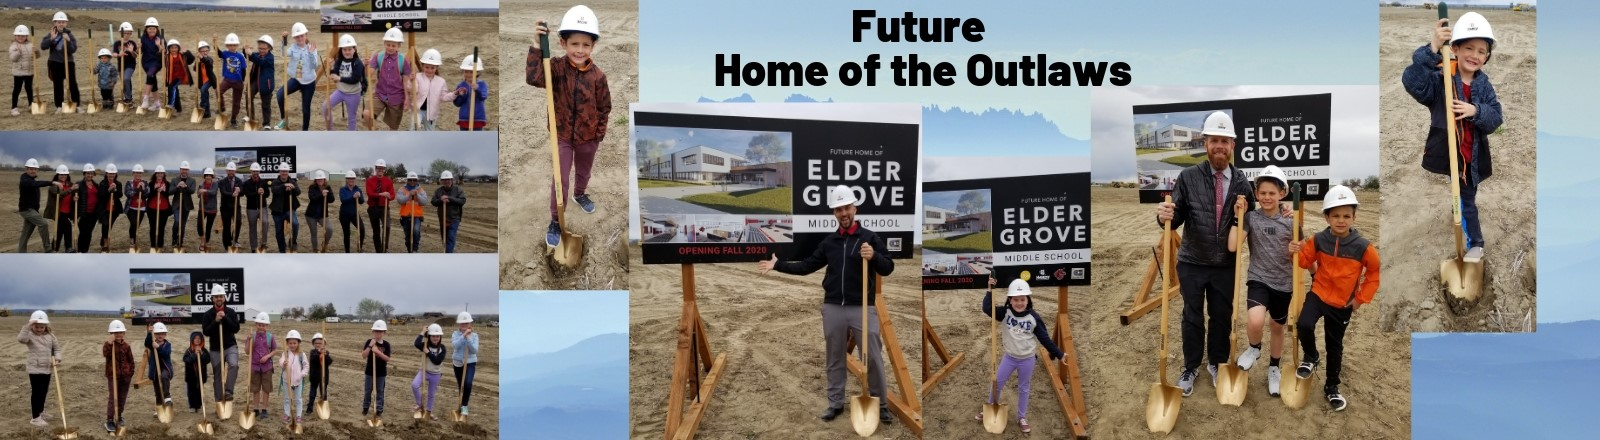 Images of students and staff at groundbreaking ceremony